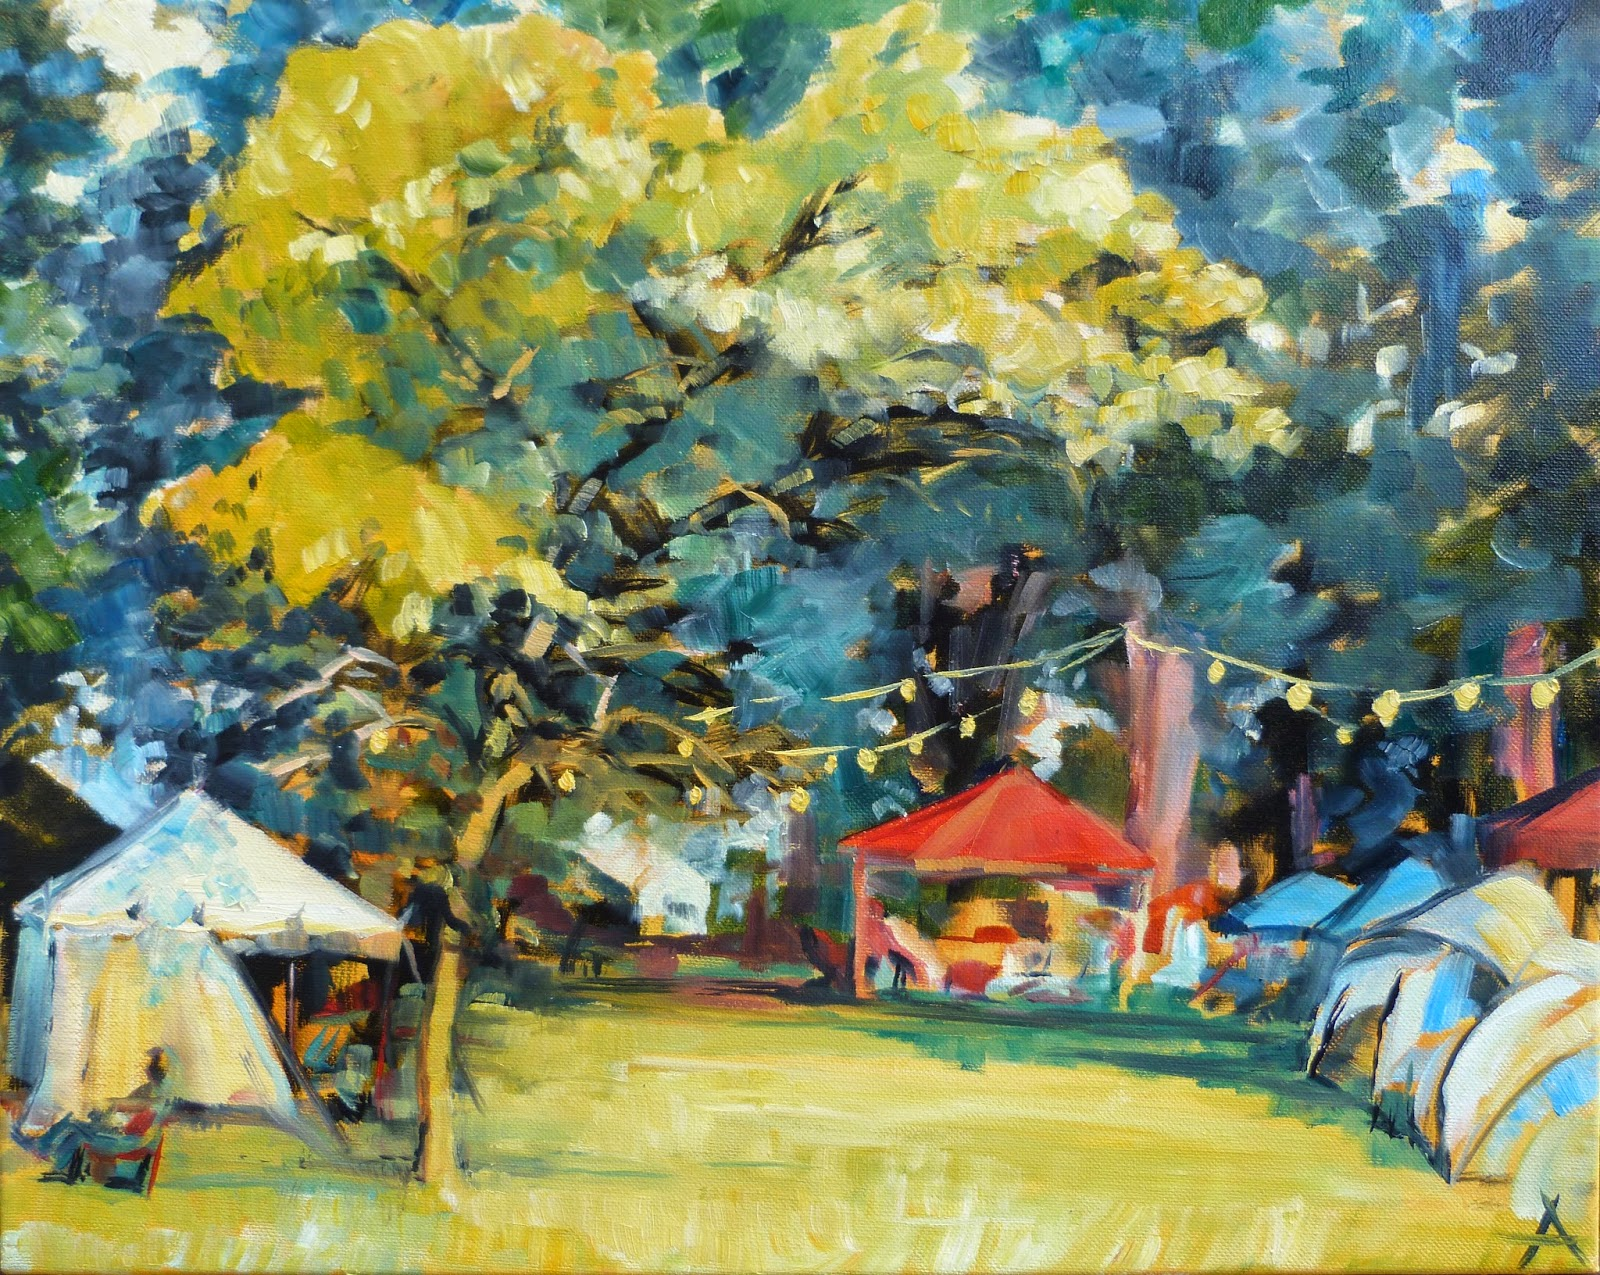 SOLD, The Indiana Fiddler's Gathering, Oil on Canvas, Copyright 2014 Hirschten